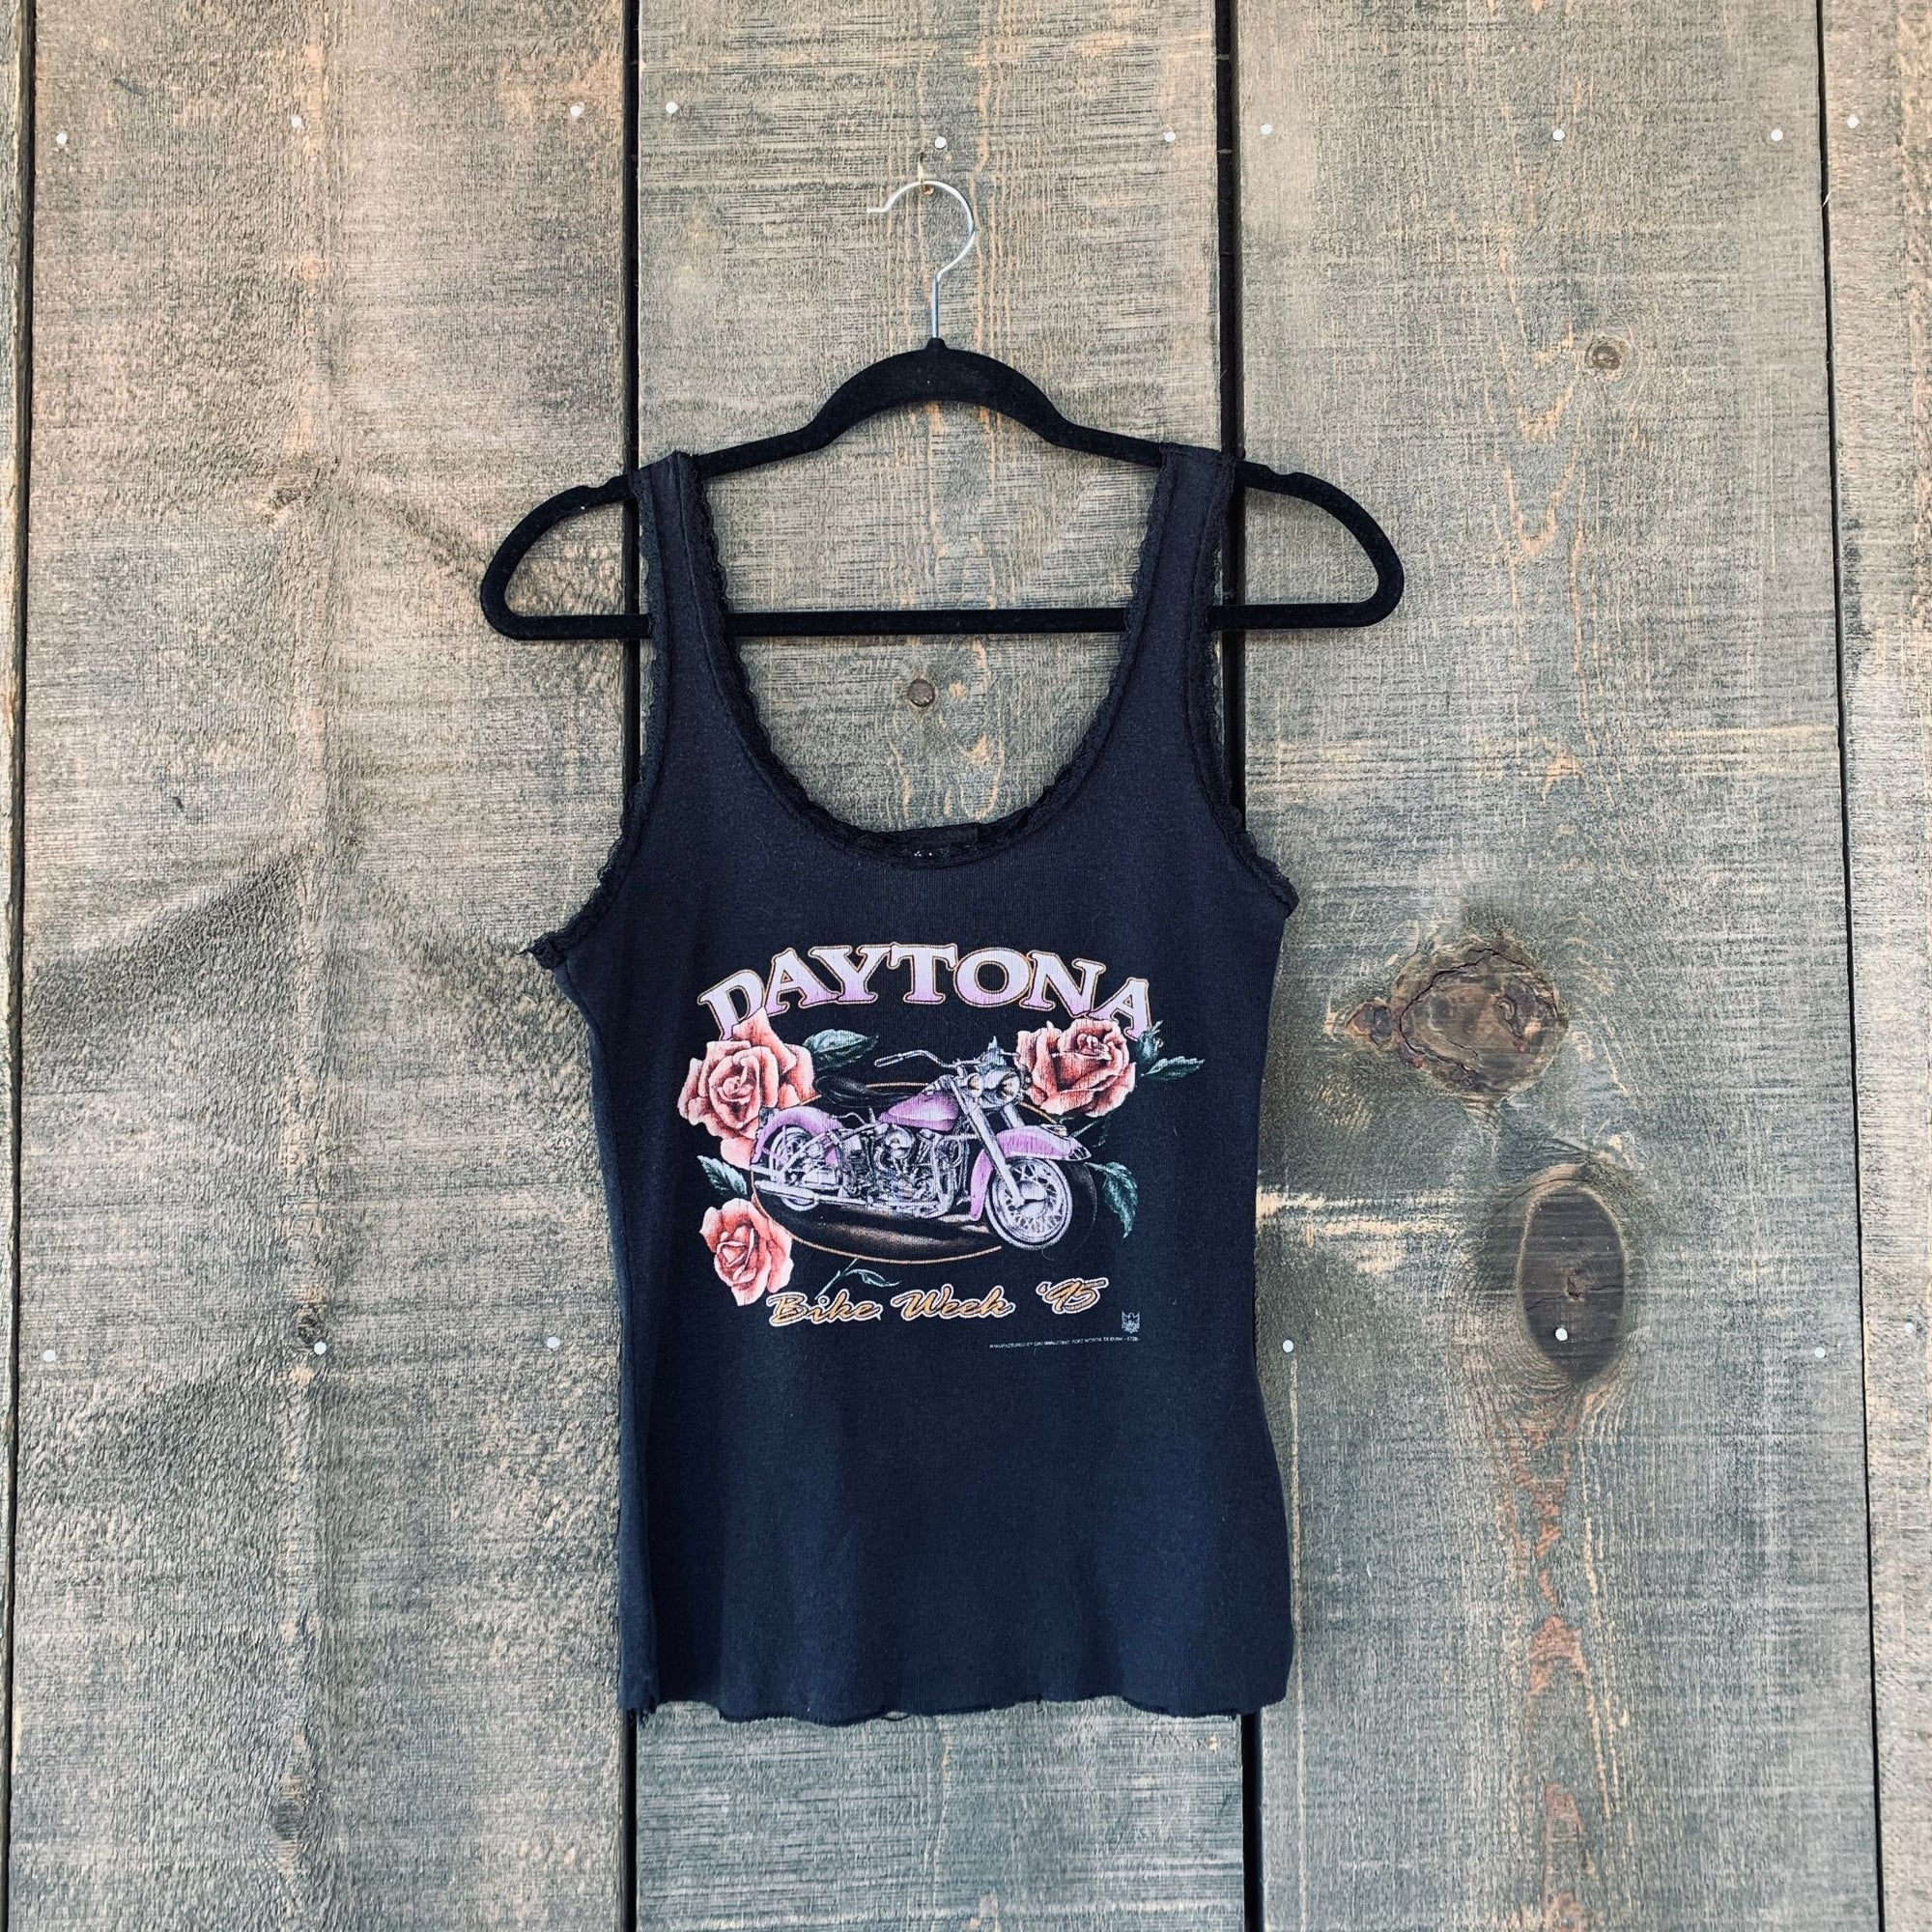 1995 Daytona Bike Week Tank-top